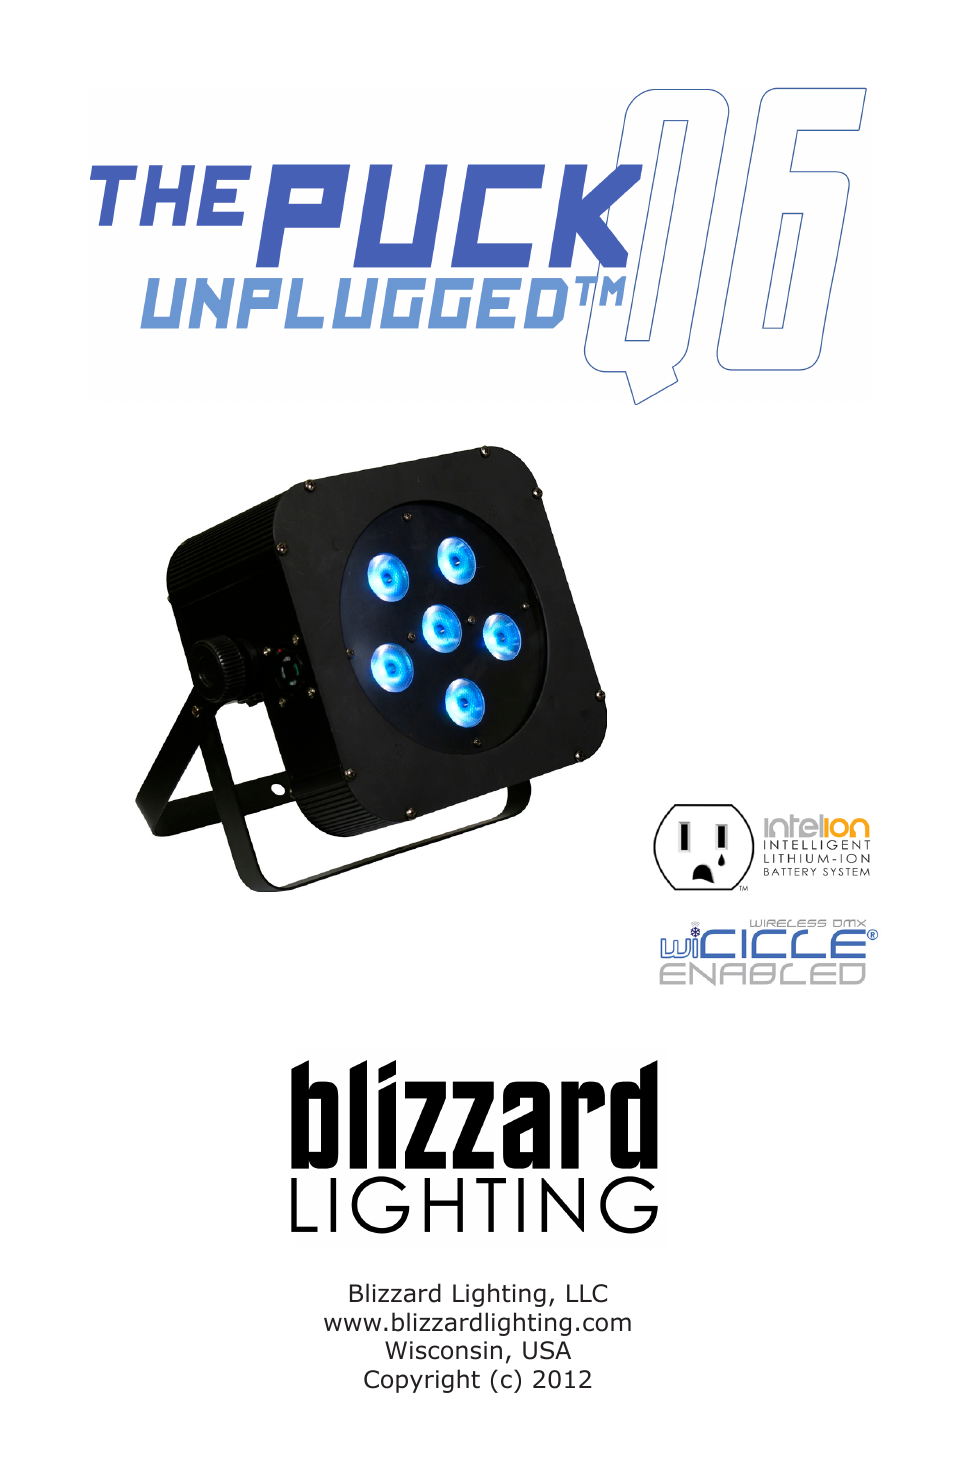 Blizzard Lighting The Puck Q6A Unplugged User Manual | 20 pages | Also for The Puck Q6W Unplugged  sc 1 st  manualsdir.com & Blizzard Lighting The Puck Q6A Unplugged User Manual | 20 pages ...